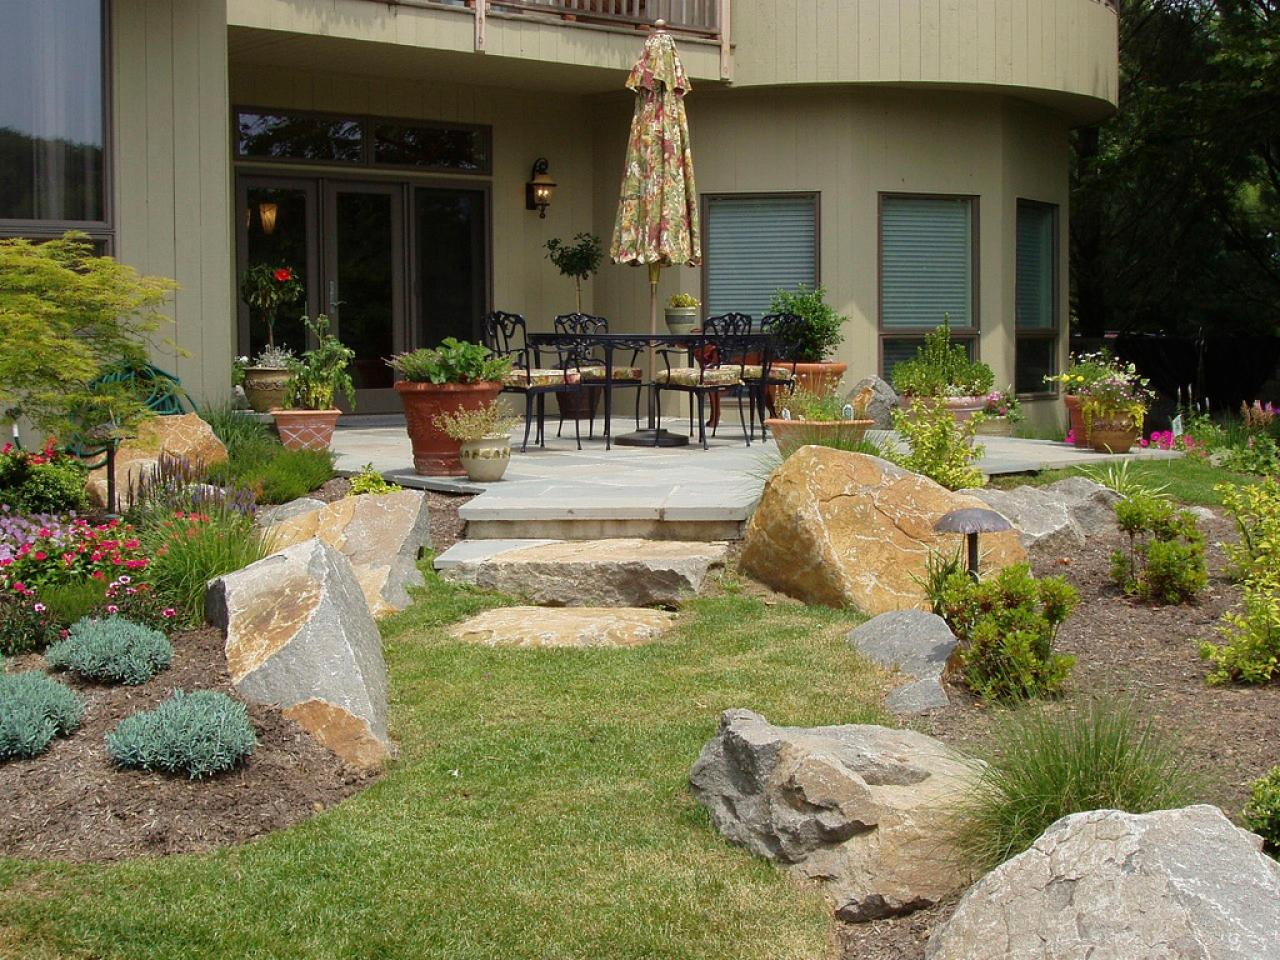 Patio landscaping ideas hgtv for Garden landscaping ideas for large gardens